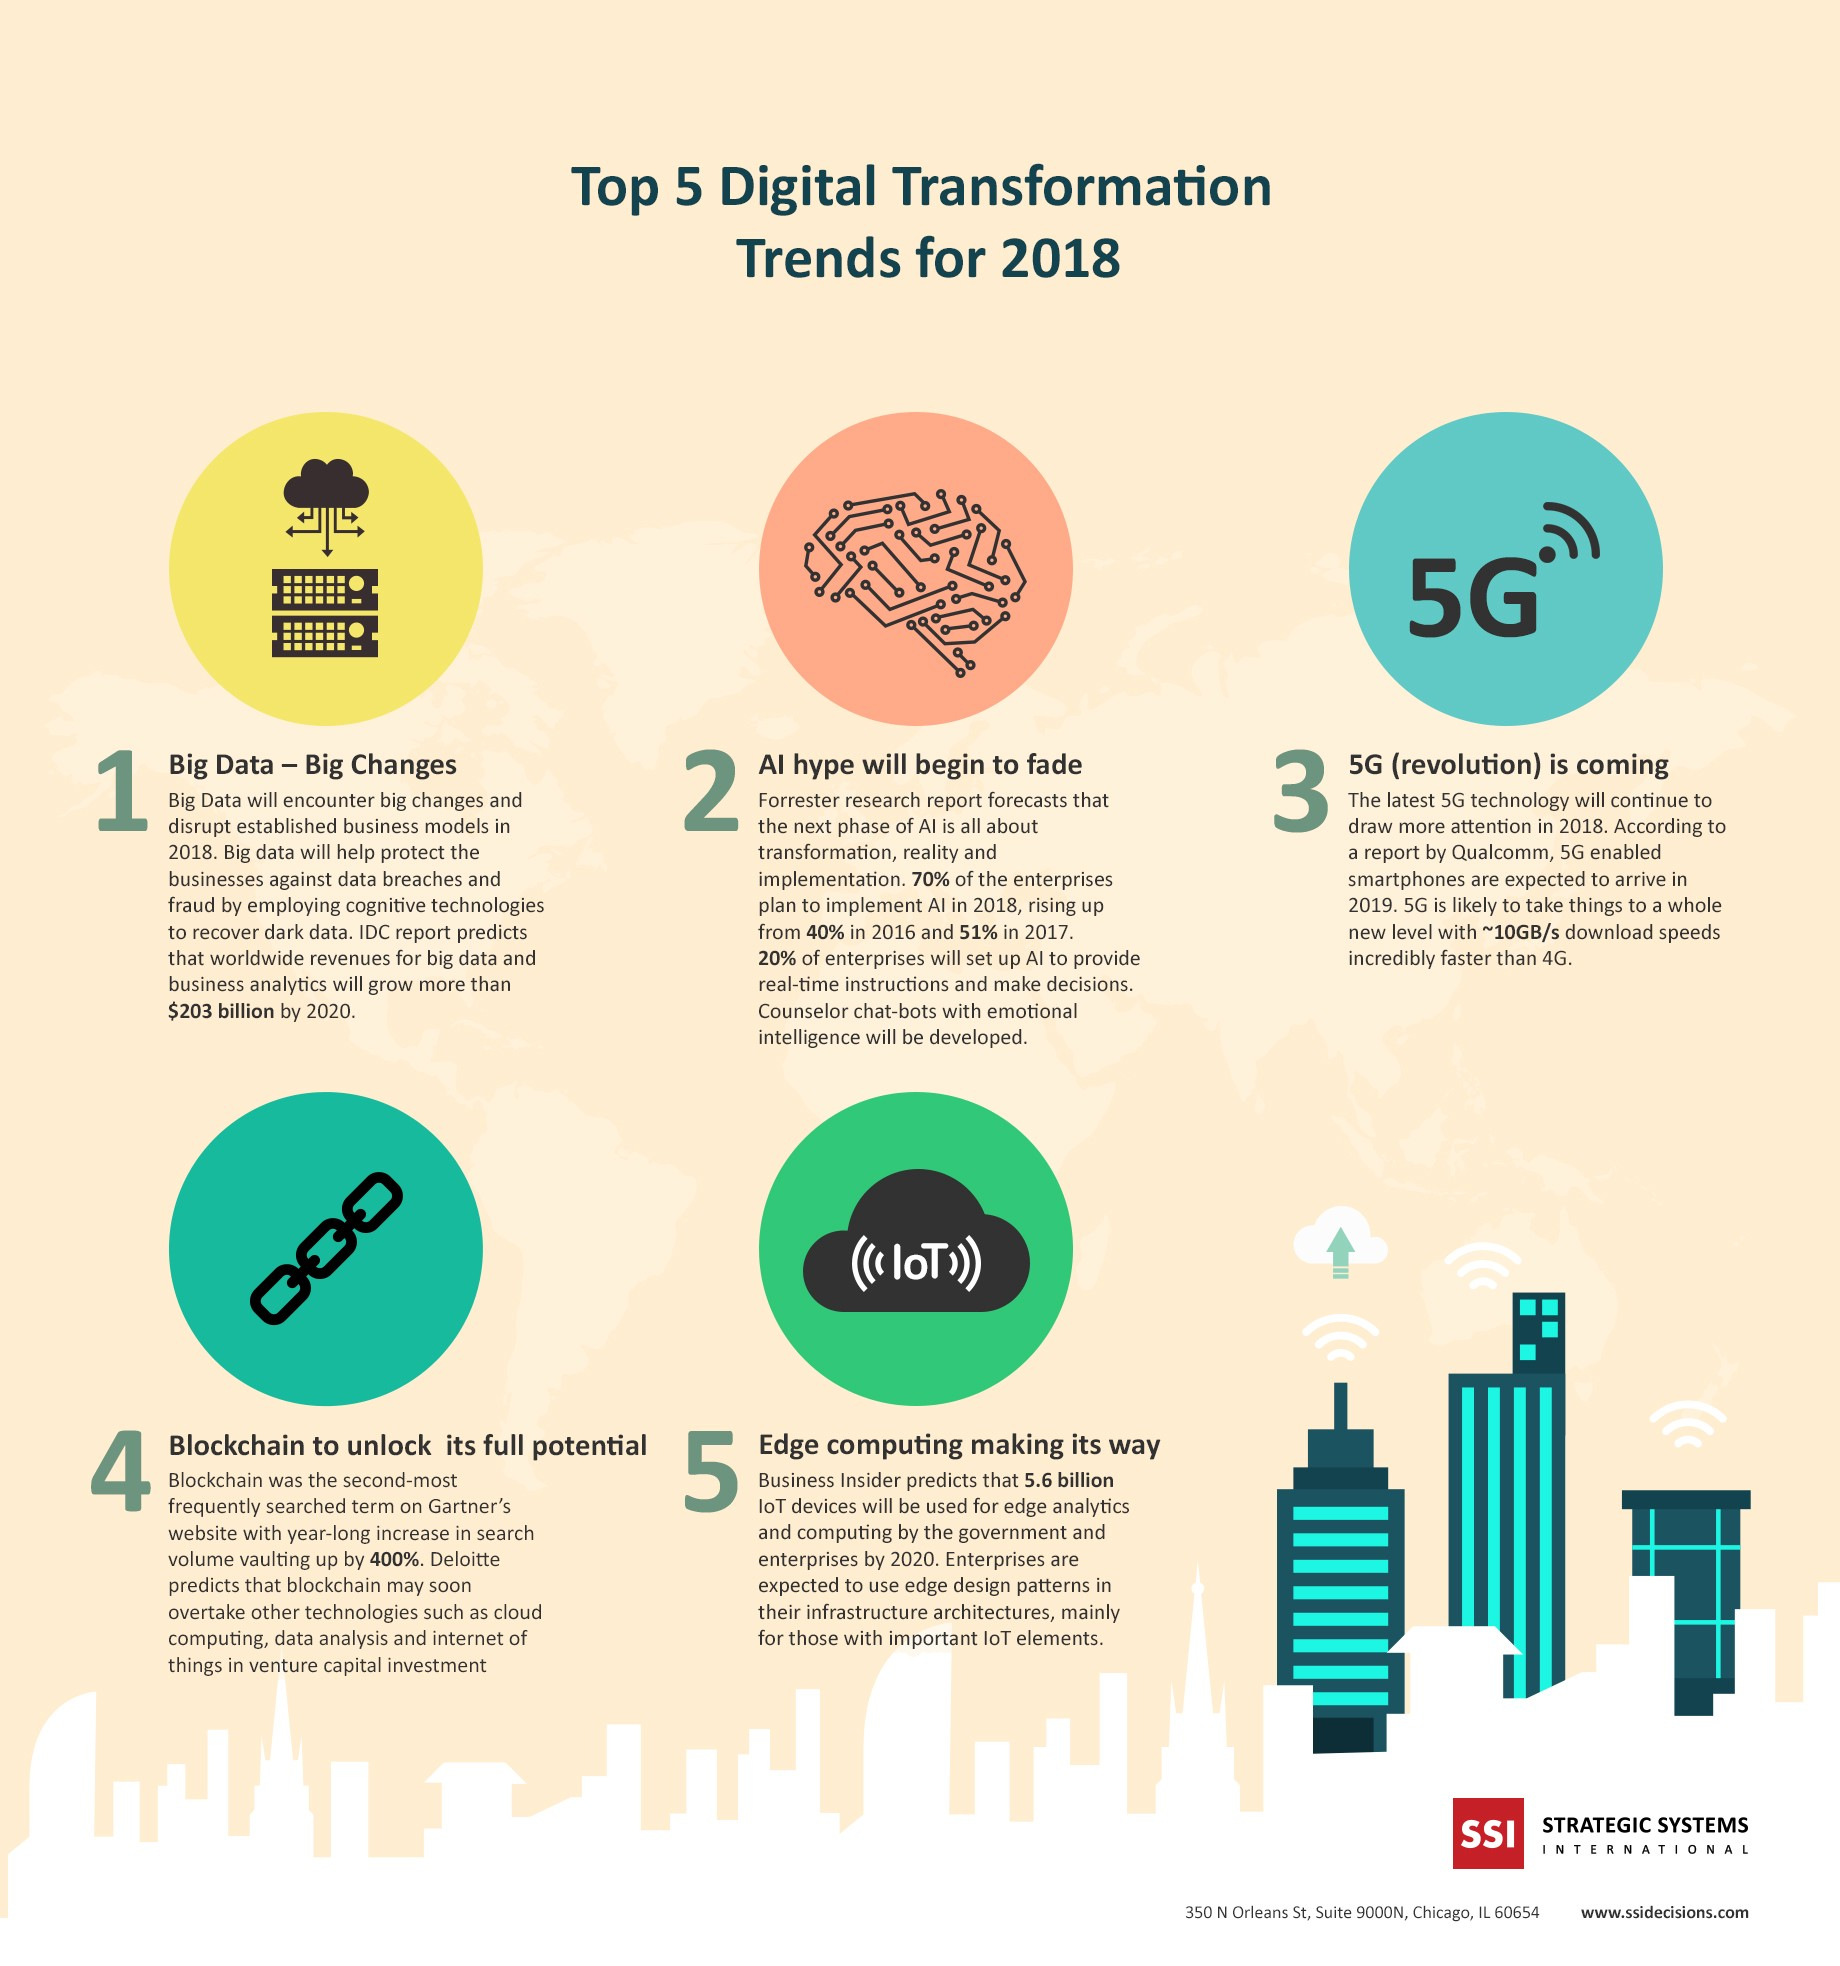 Top 5 Digital Transformation Trends for 2018 (Infographic)